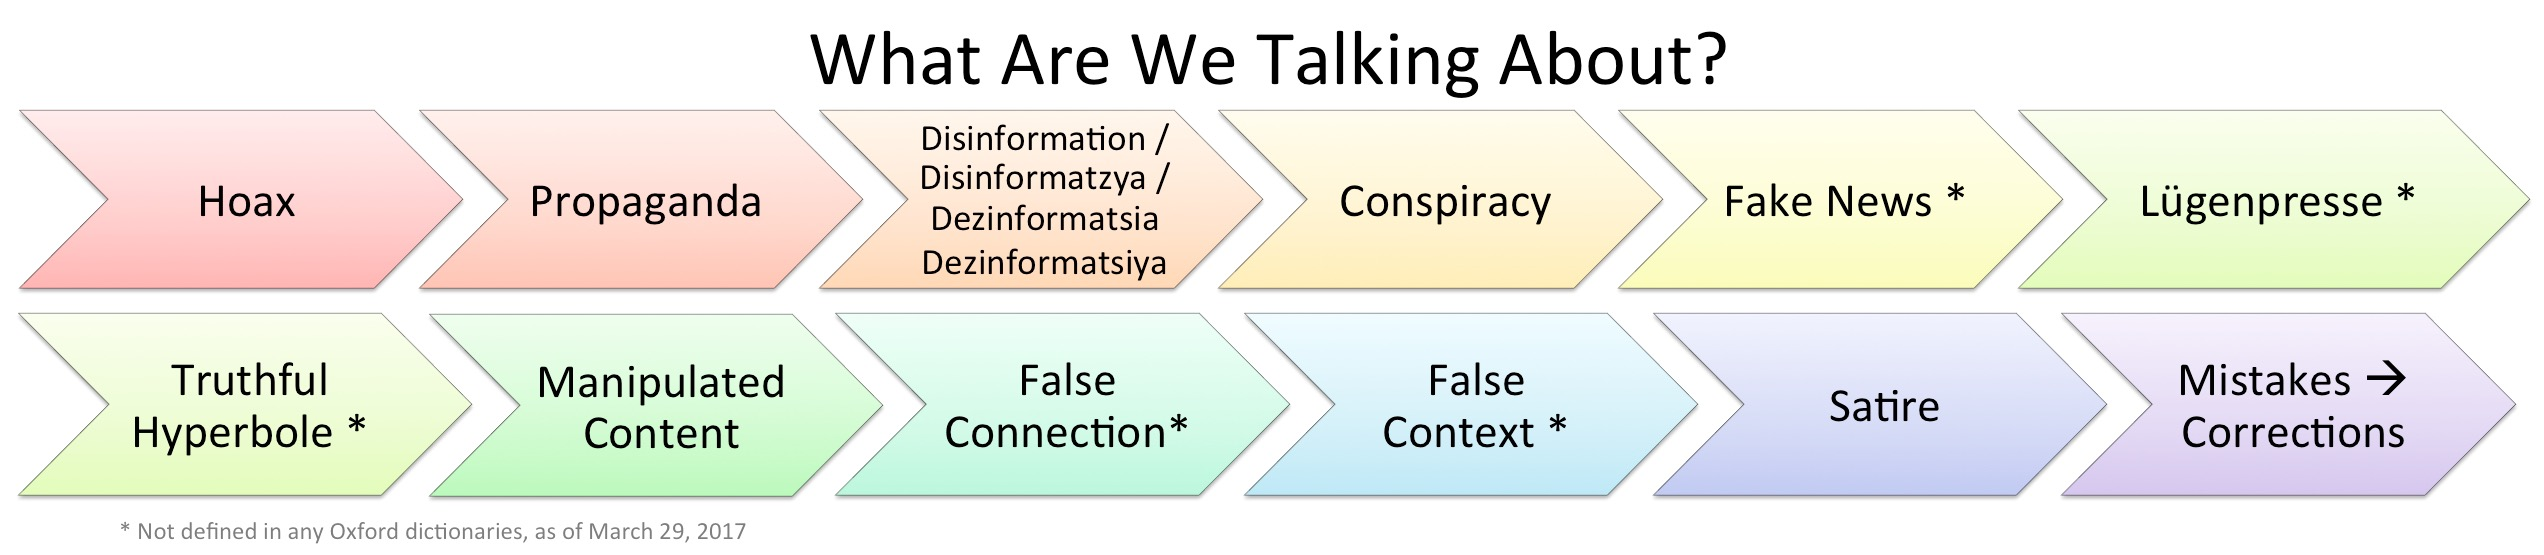 What Are We Talking About? News Schema